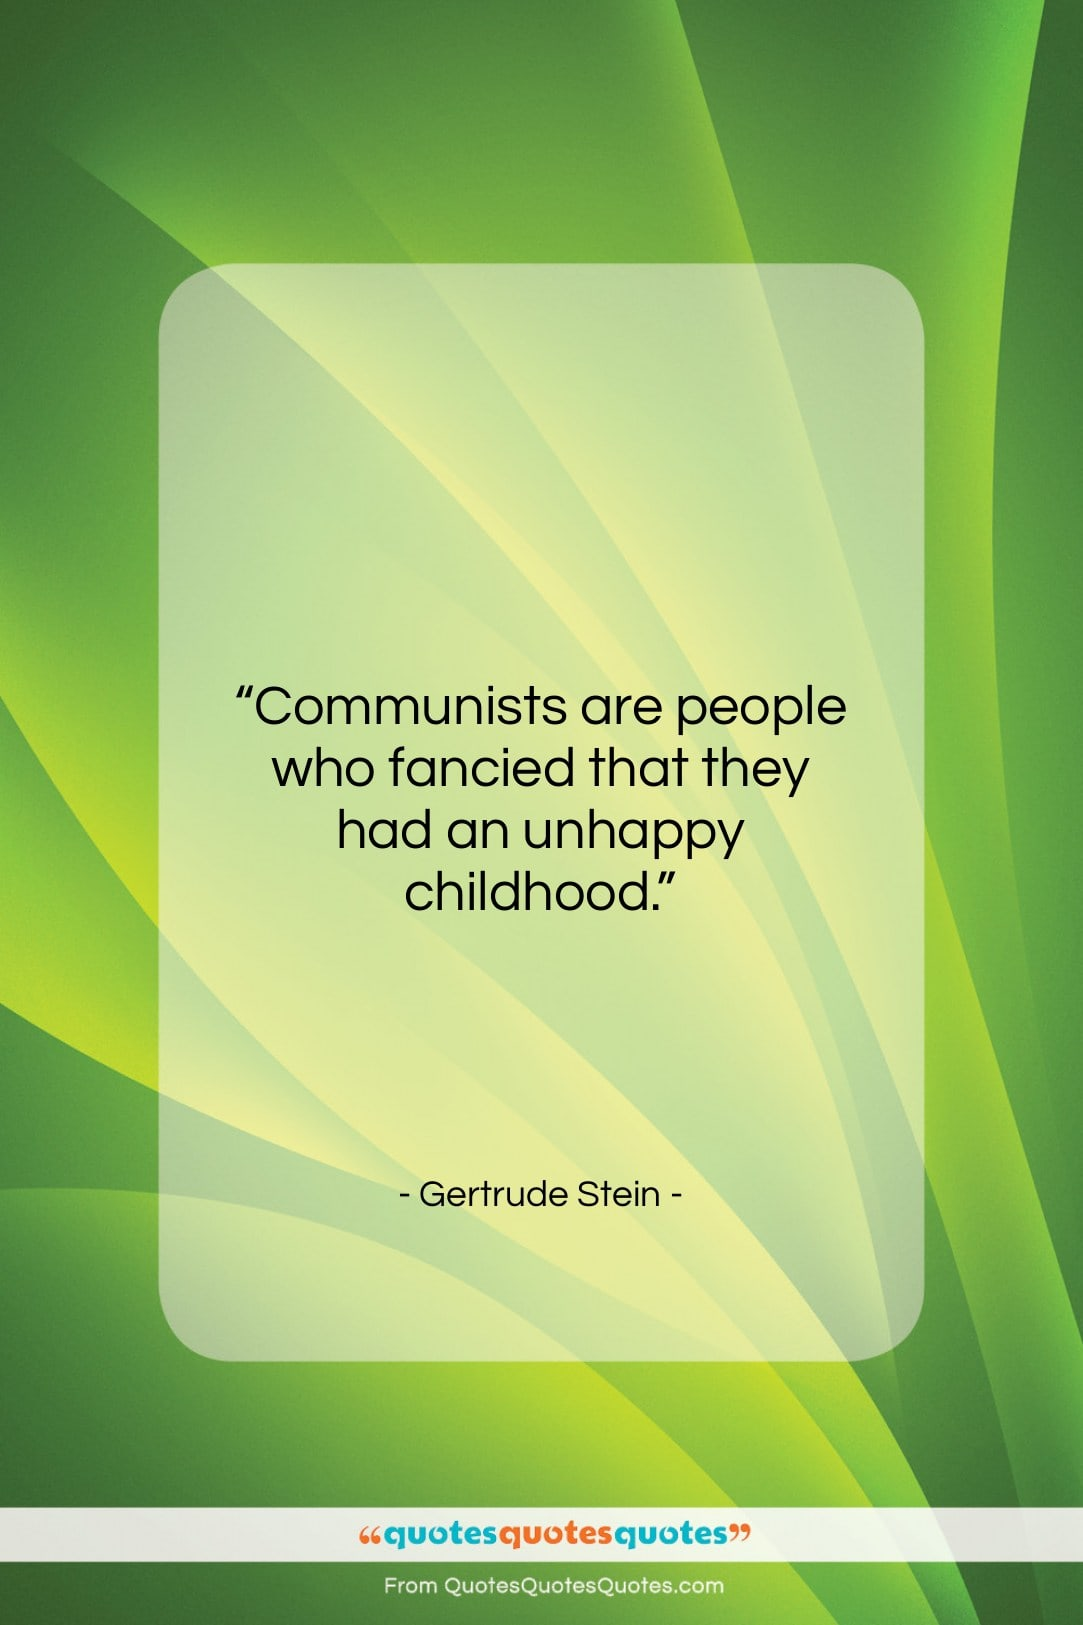 """Gertrude Stein quote: """"Communists are people who fancied that they…""""- at QuotesQuotesQuotes.com"""